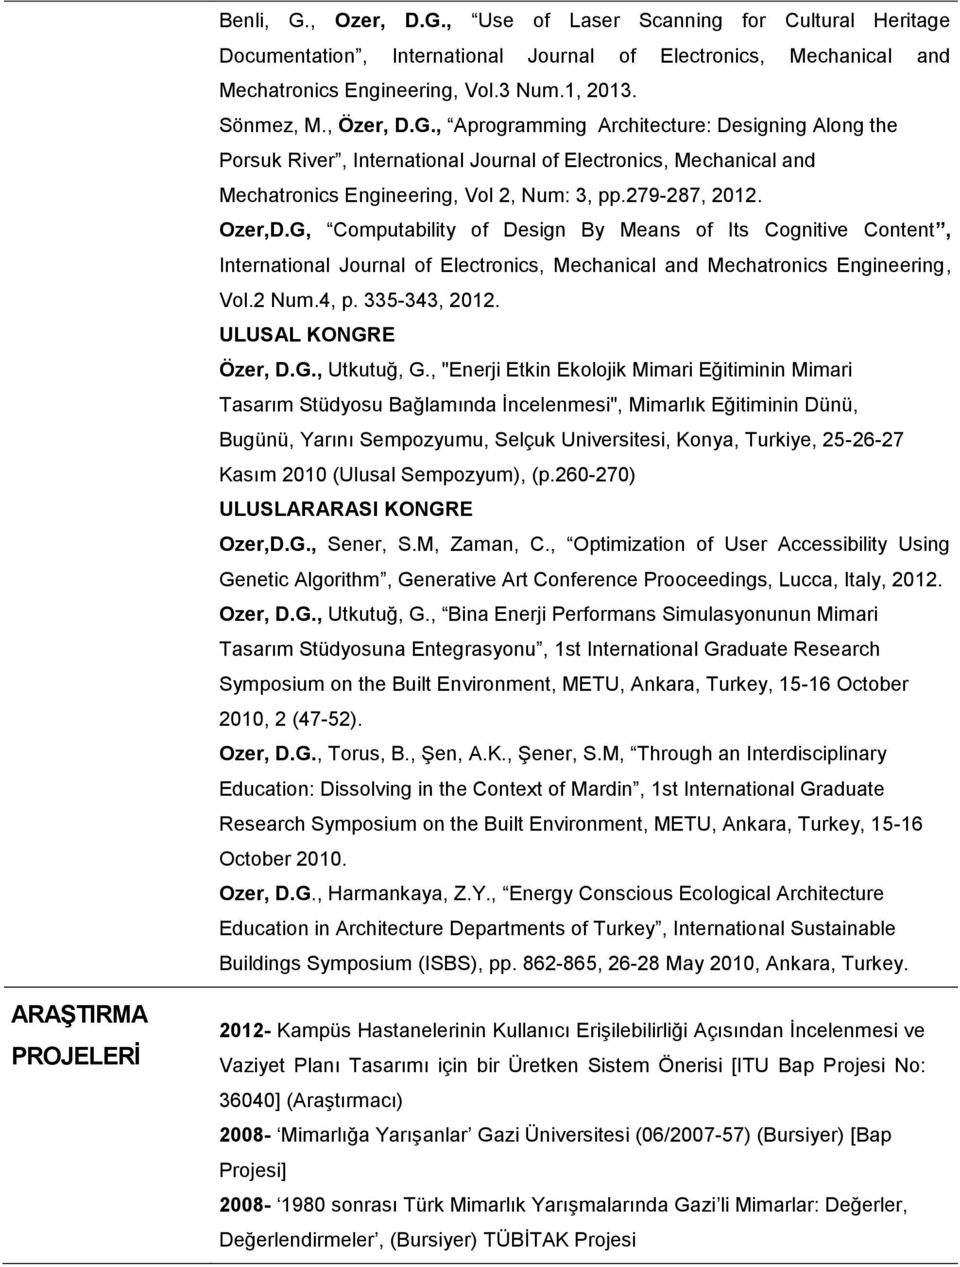 G, Computability of Design By Means of Its Cognitive Content, International Journal of Electronics, Mechanical and Mechatronics Engineering, Vol.2 Num.4, p. 335-343, 2012. ULUSAL KONGRE Özer, D.G., Utkutuğ, G.